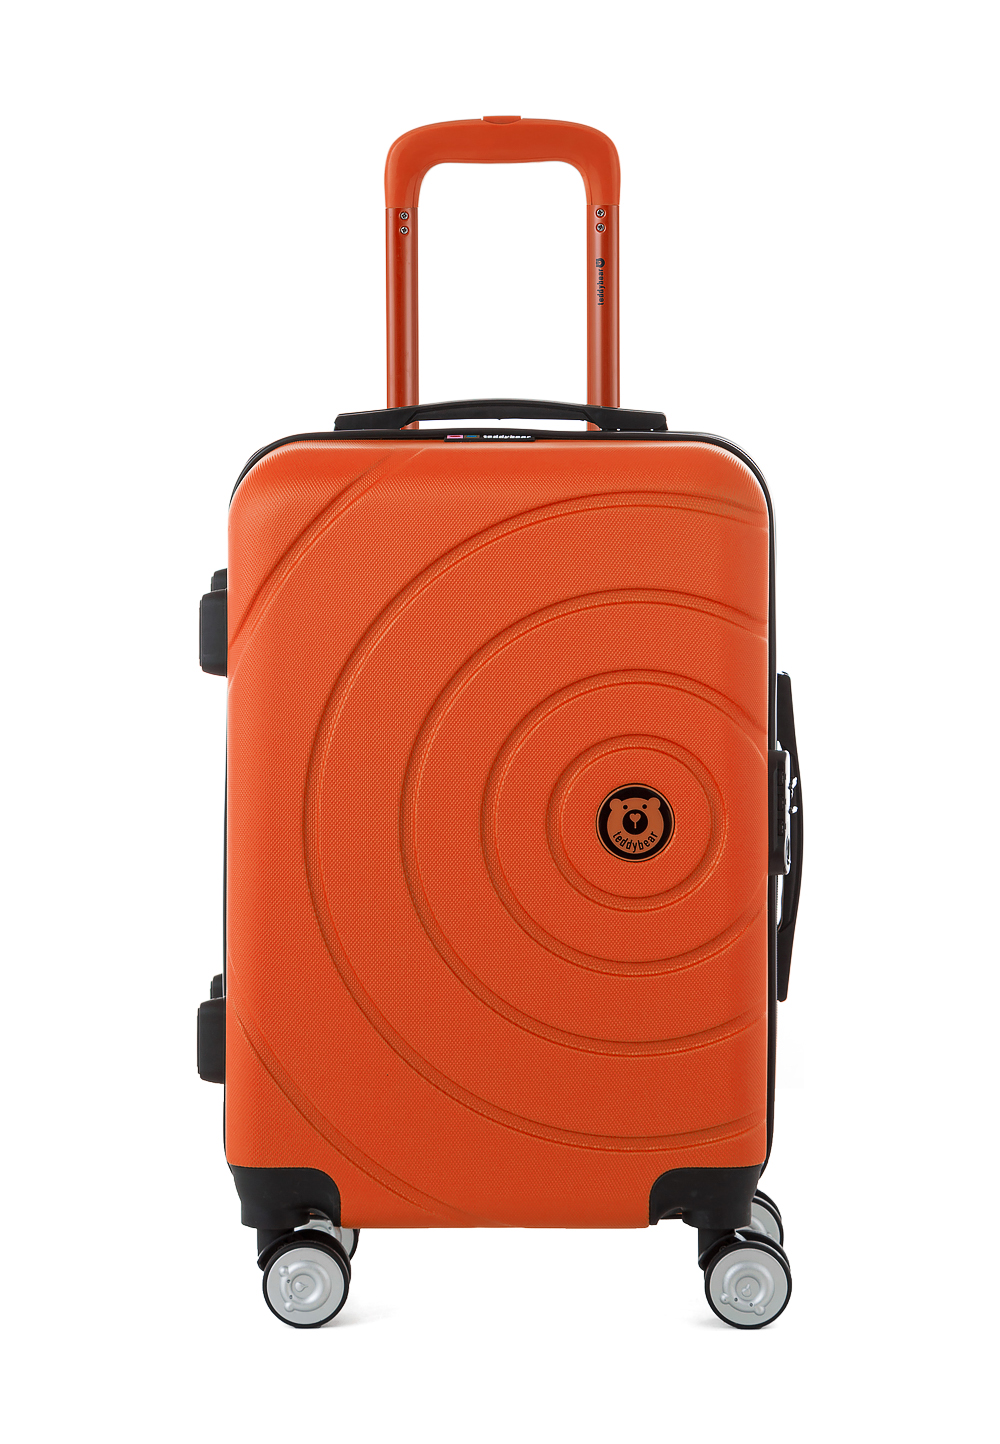 Teddy Bear Kabinen-Trolley Keshi orange | Taschen > Koffer & Trolleys > Trolleys | Orange | Teddy Bear